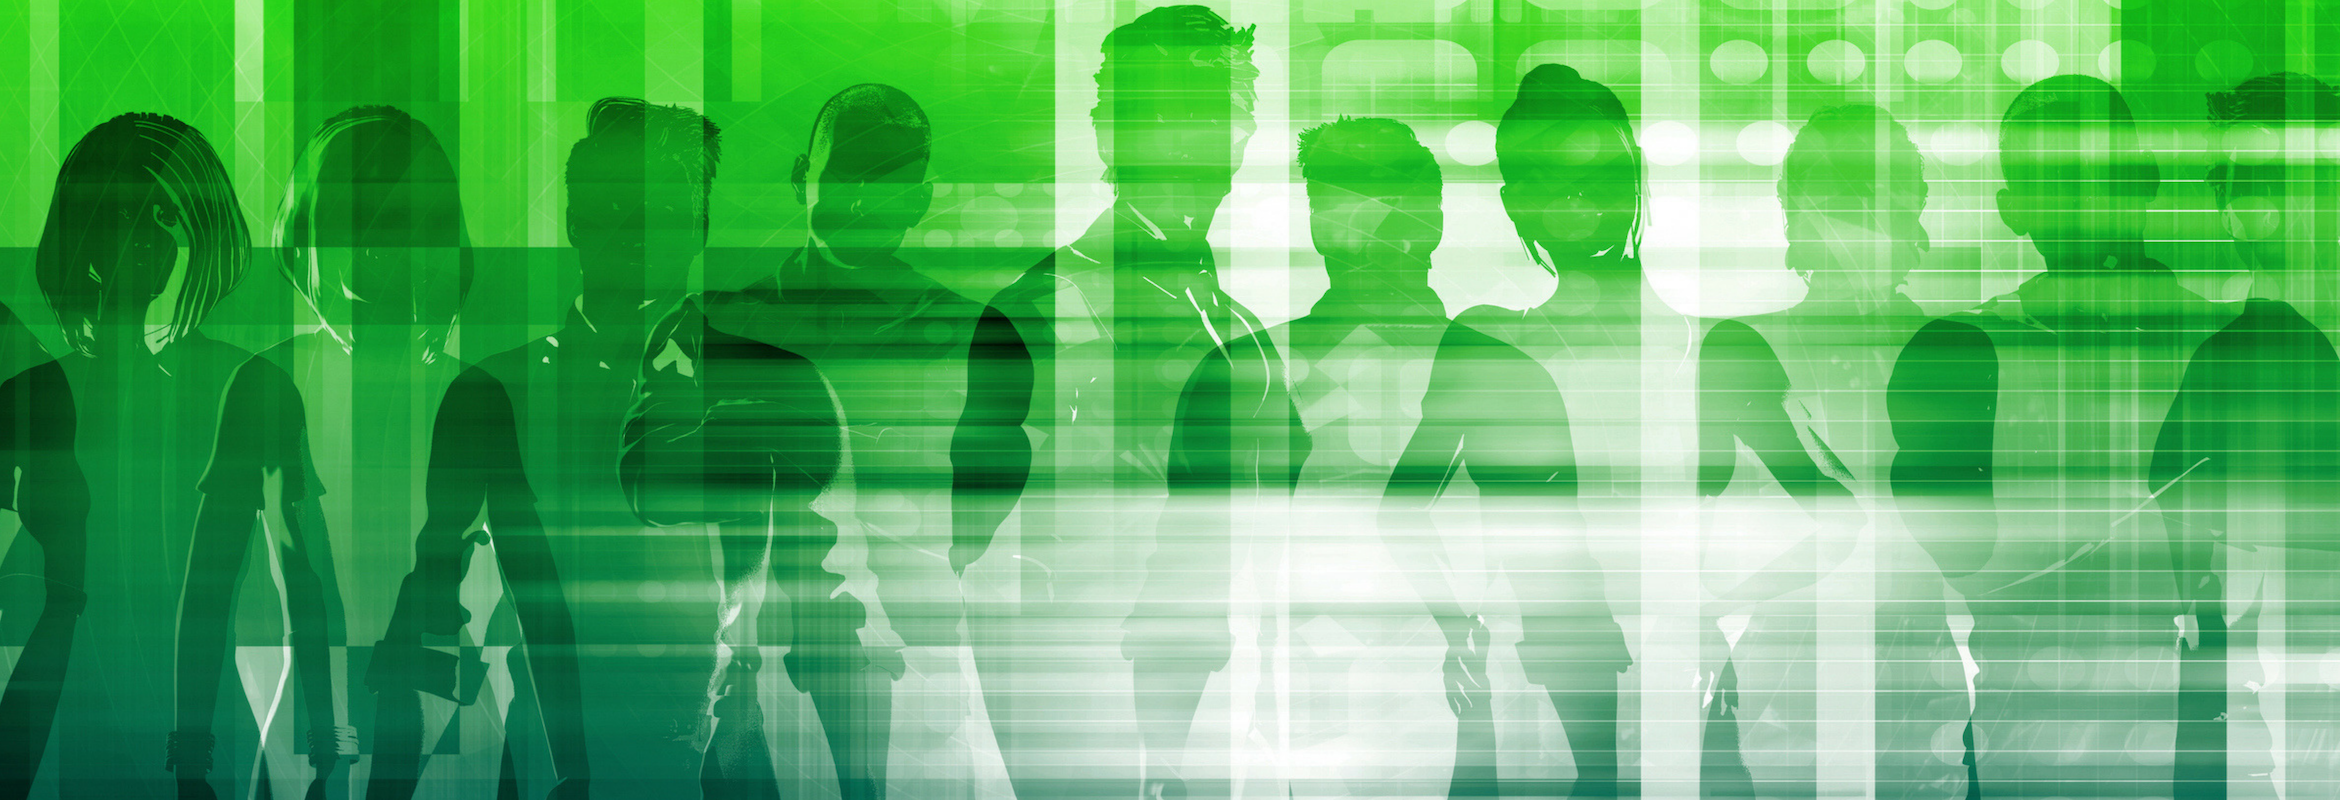 People standing side by side with a green colored overlay.